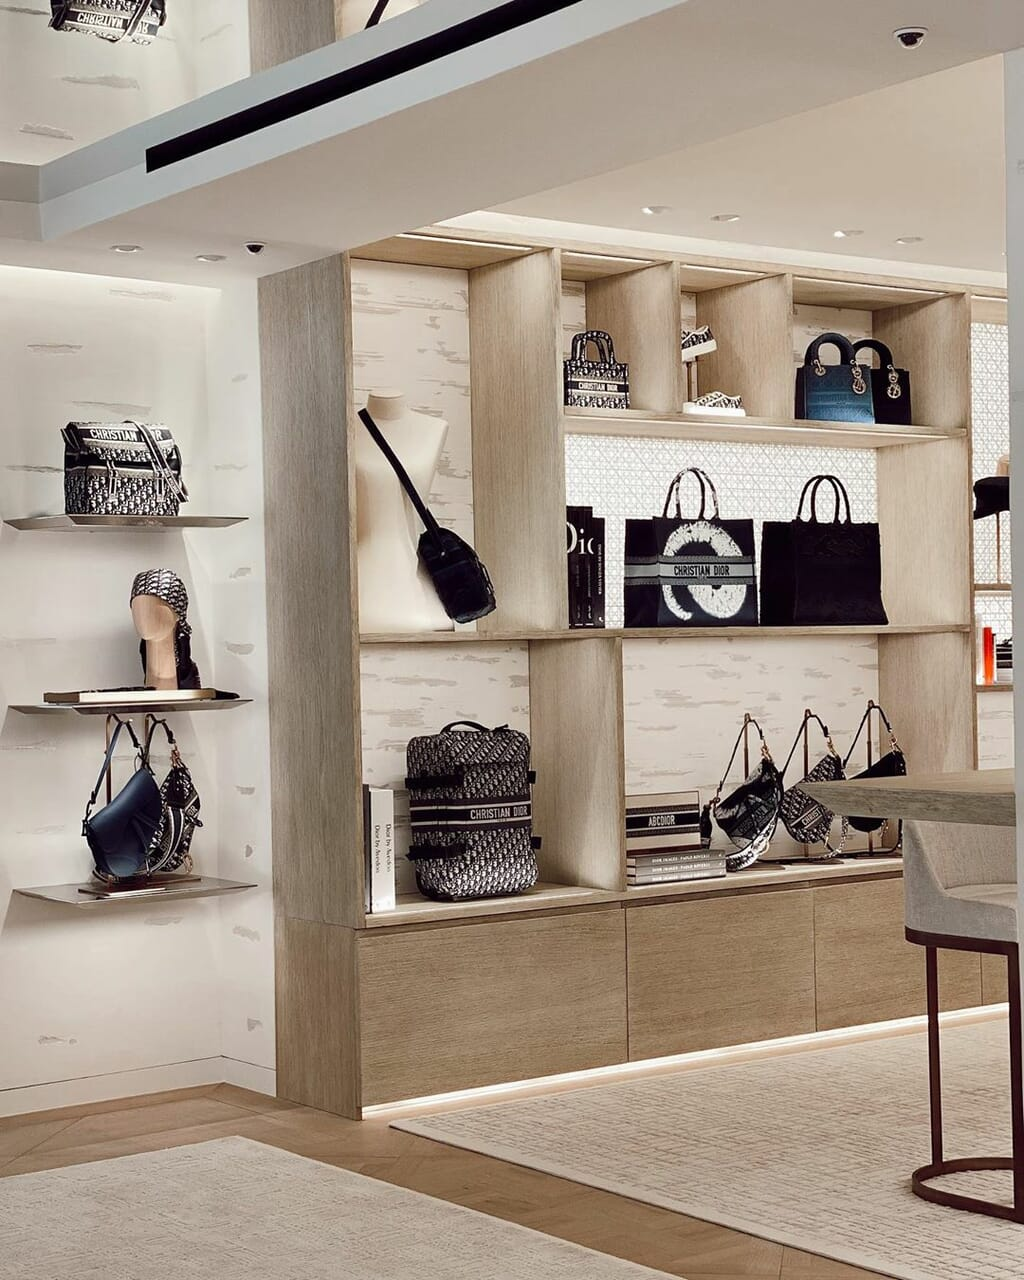 Christian Dior, dior, and dior bags image